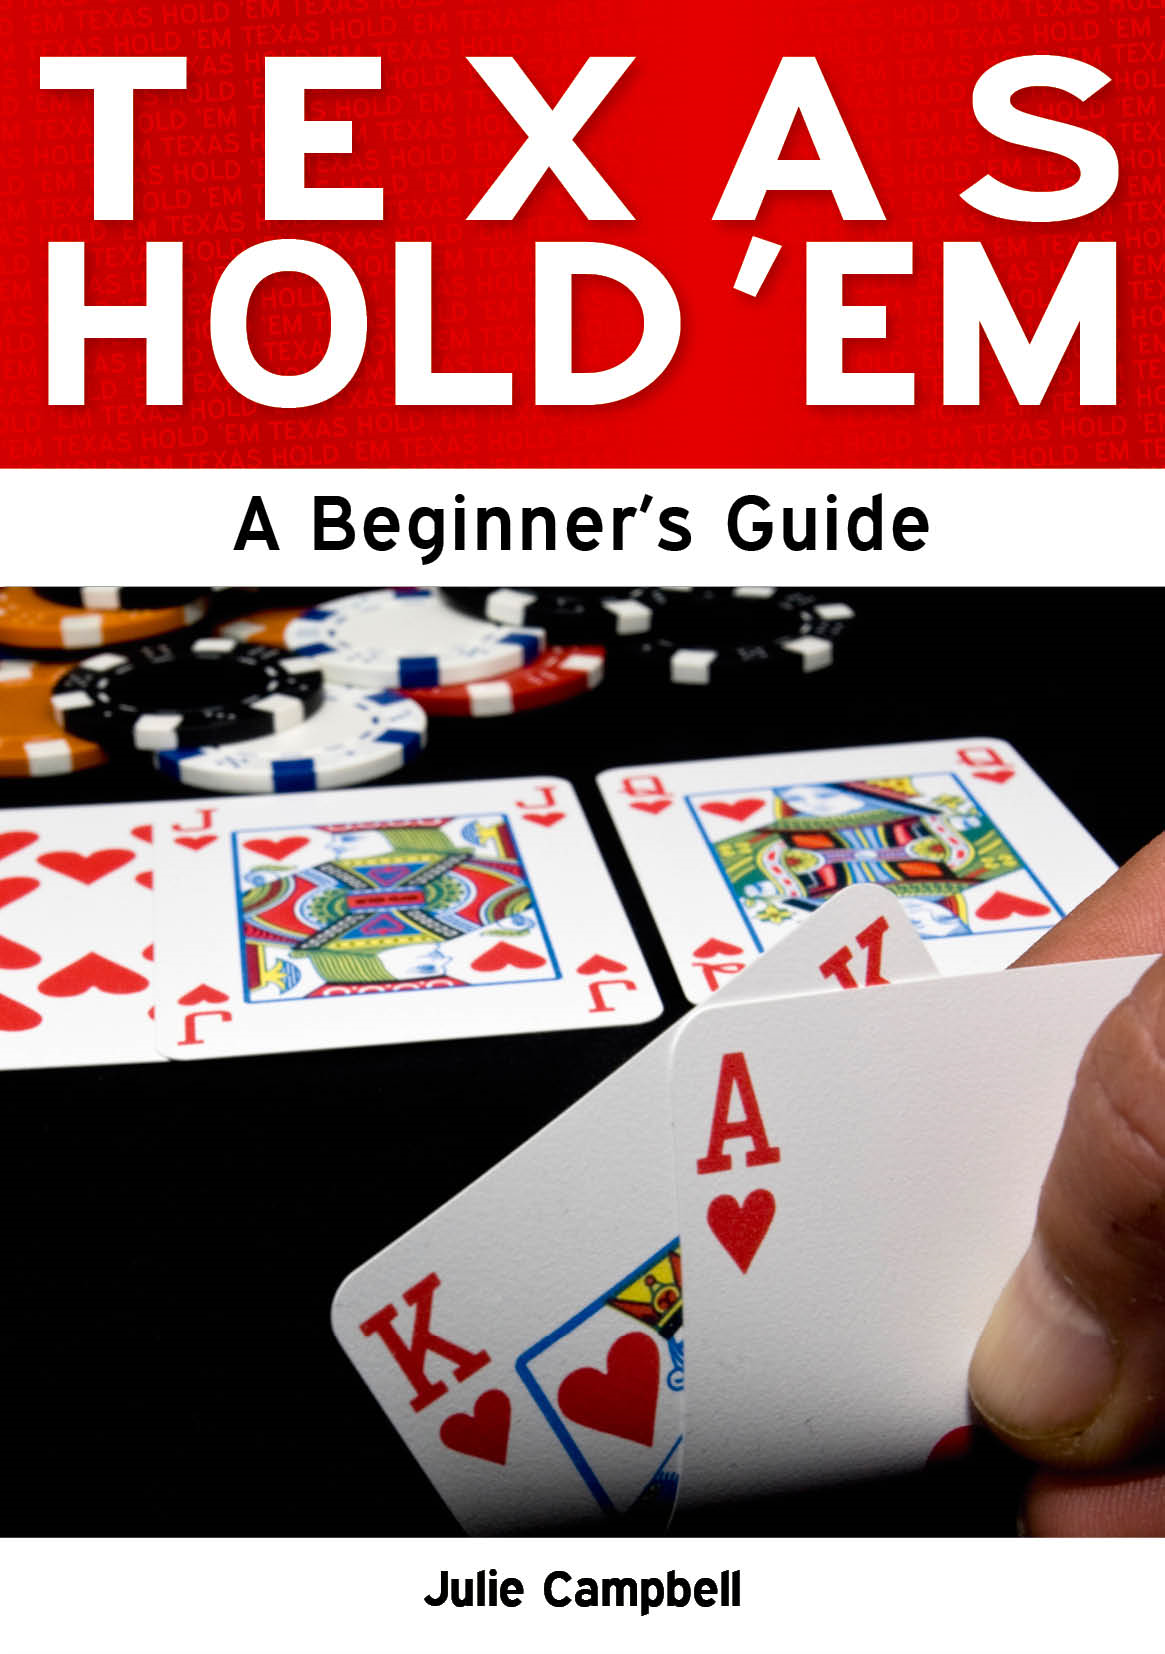 Texas Hold 'Em: A Beginner's Guide